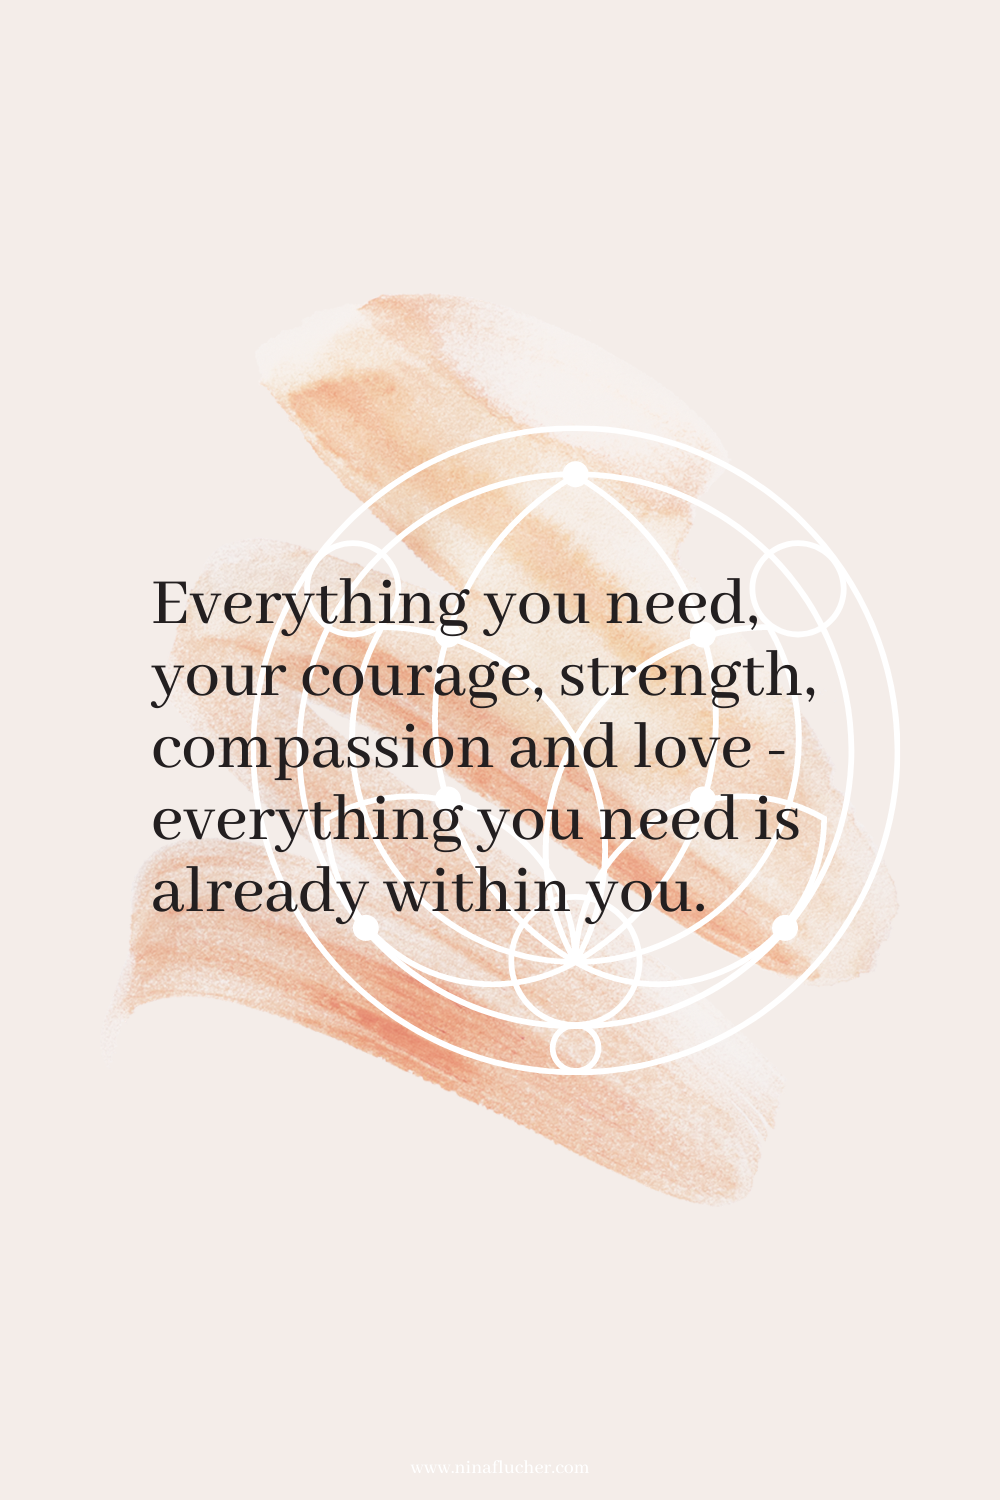 Everything you need, your courage, strength, compassion and love - everything you need is already within you. Zitate 01/21